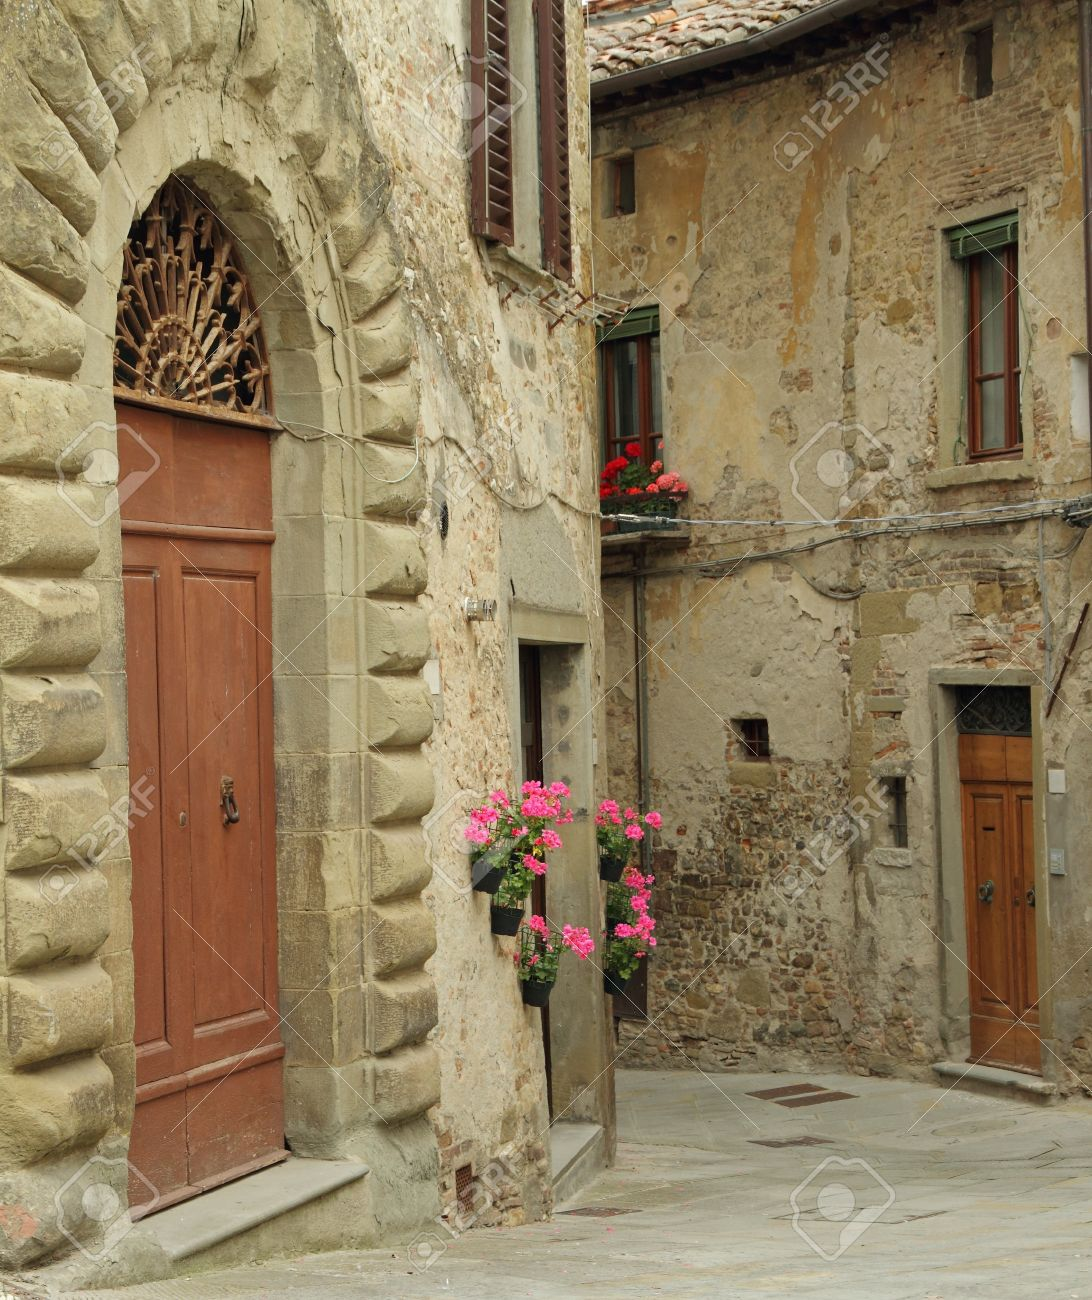 Beautiful old arch doorway on tuscan narrow street in small town Anghiari Italy Europe & Beautiful Old Arch Doorway On Tuscan Narrow Street In Small Town ...